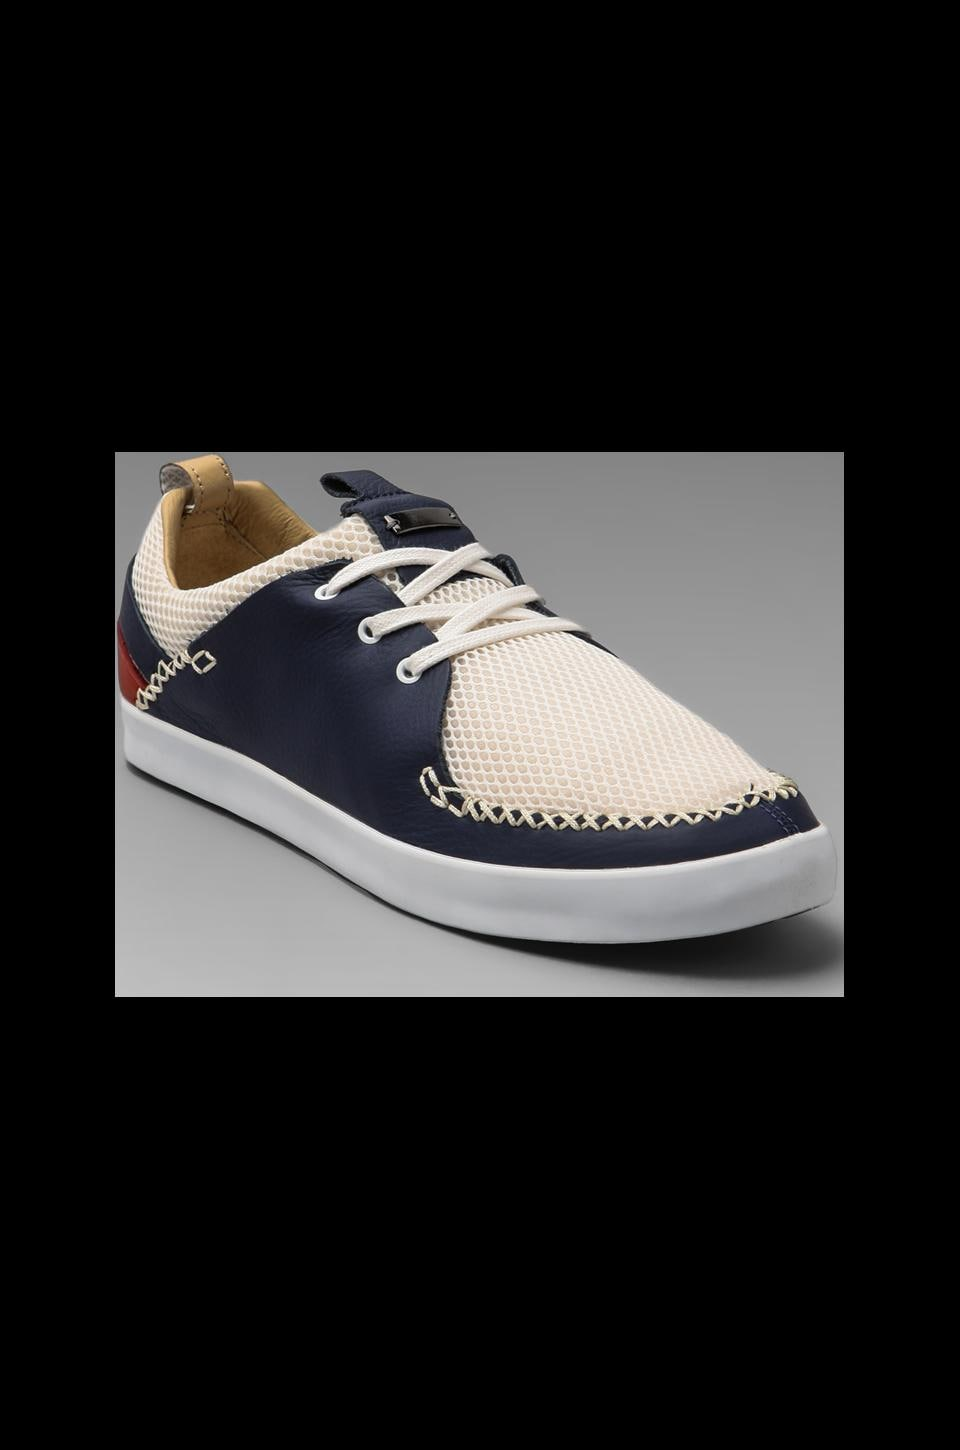 adidas SLVR Beach Moccasins in White/Navy